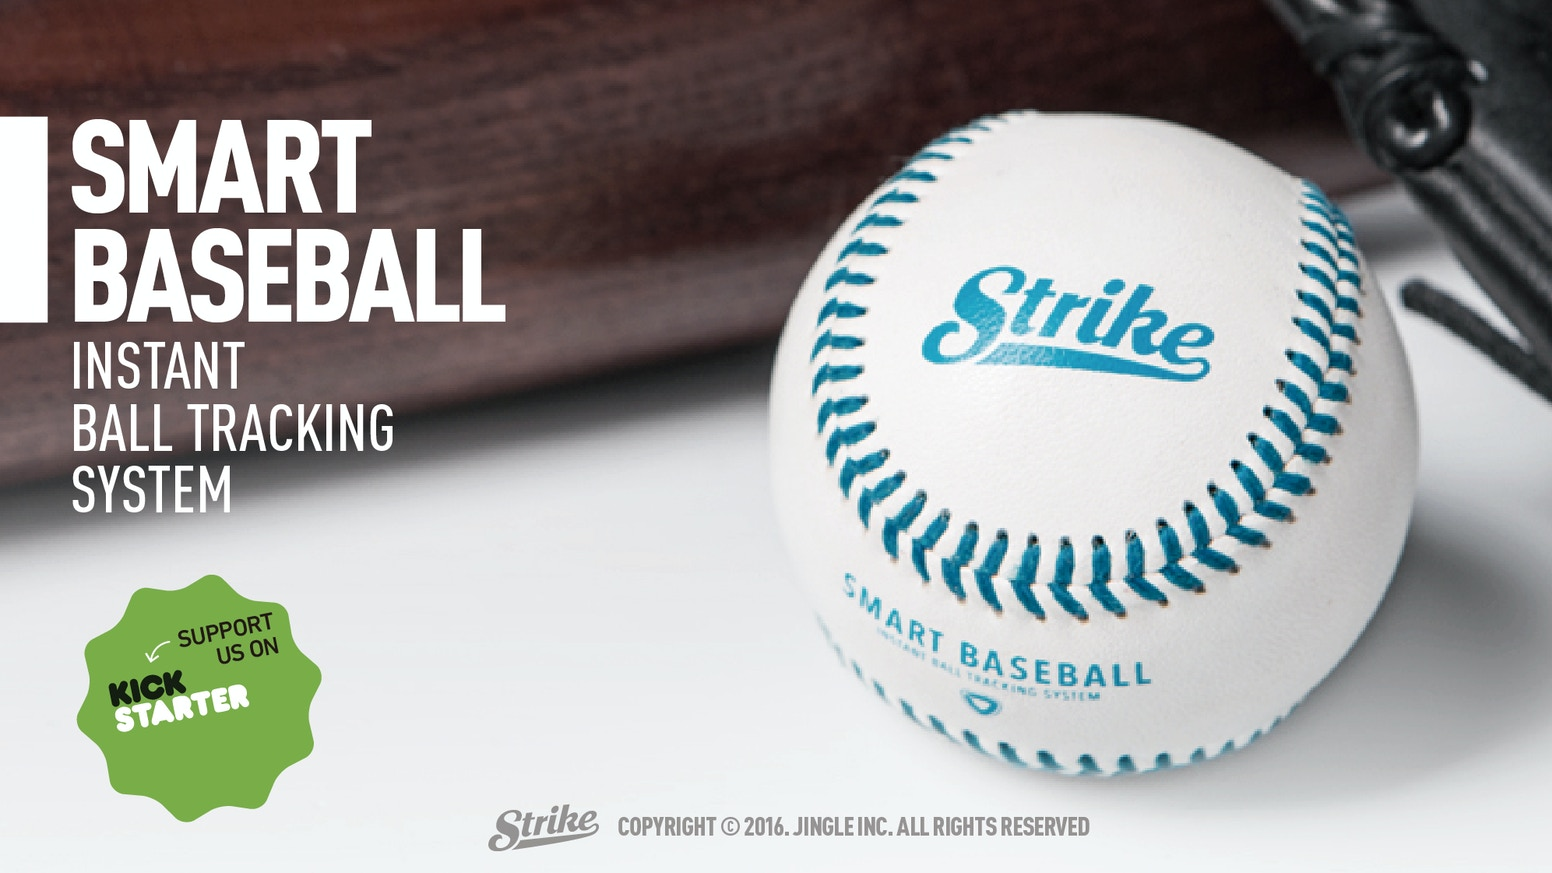 Strike, the world's first smart baseball can detect and display the speed, spin rate and pitching trajectory of each throw of the ball.